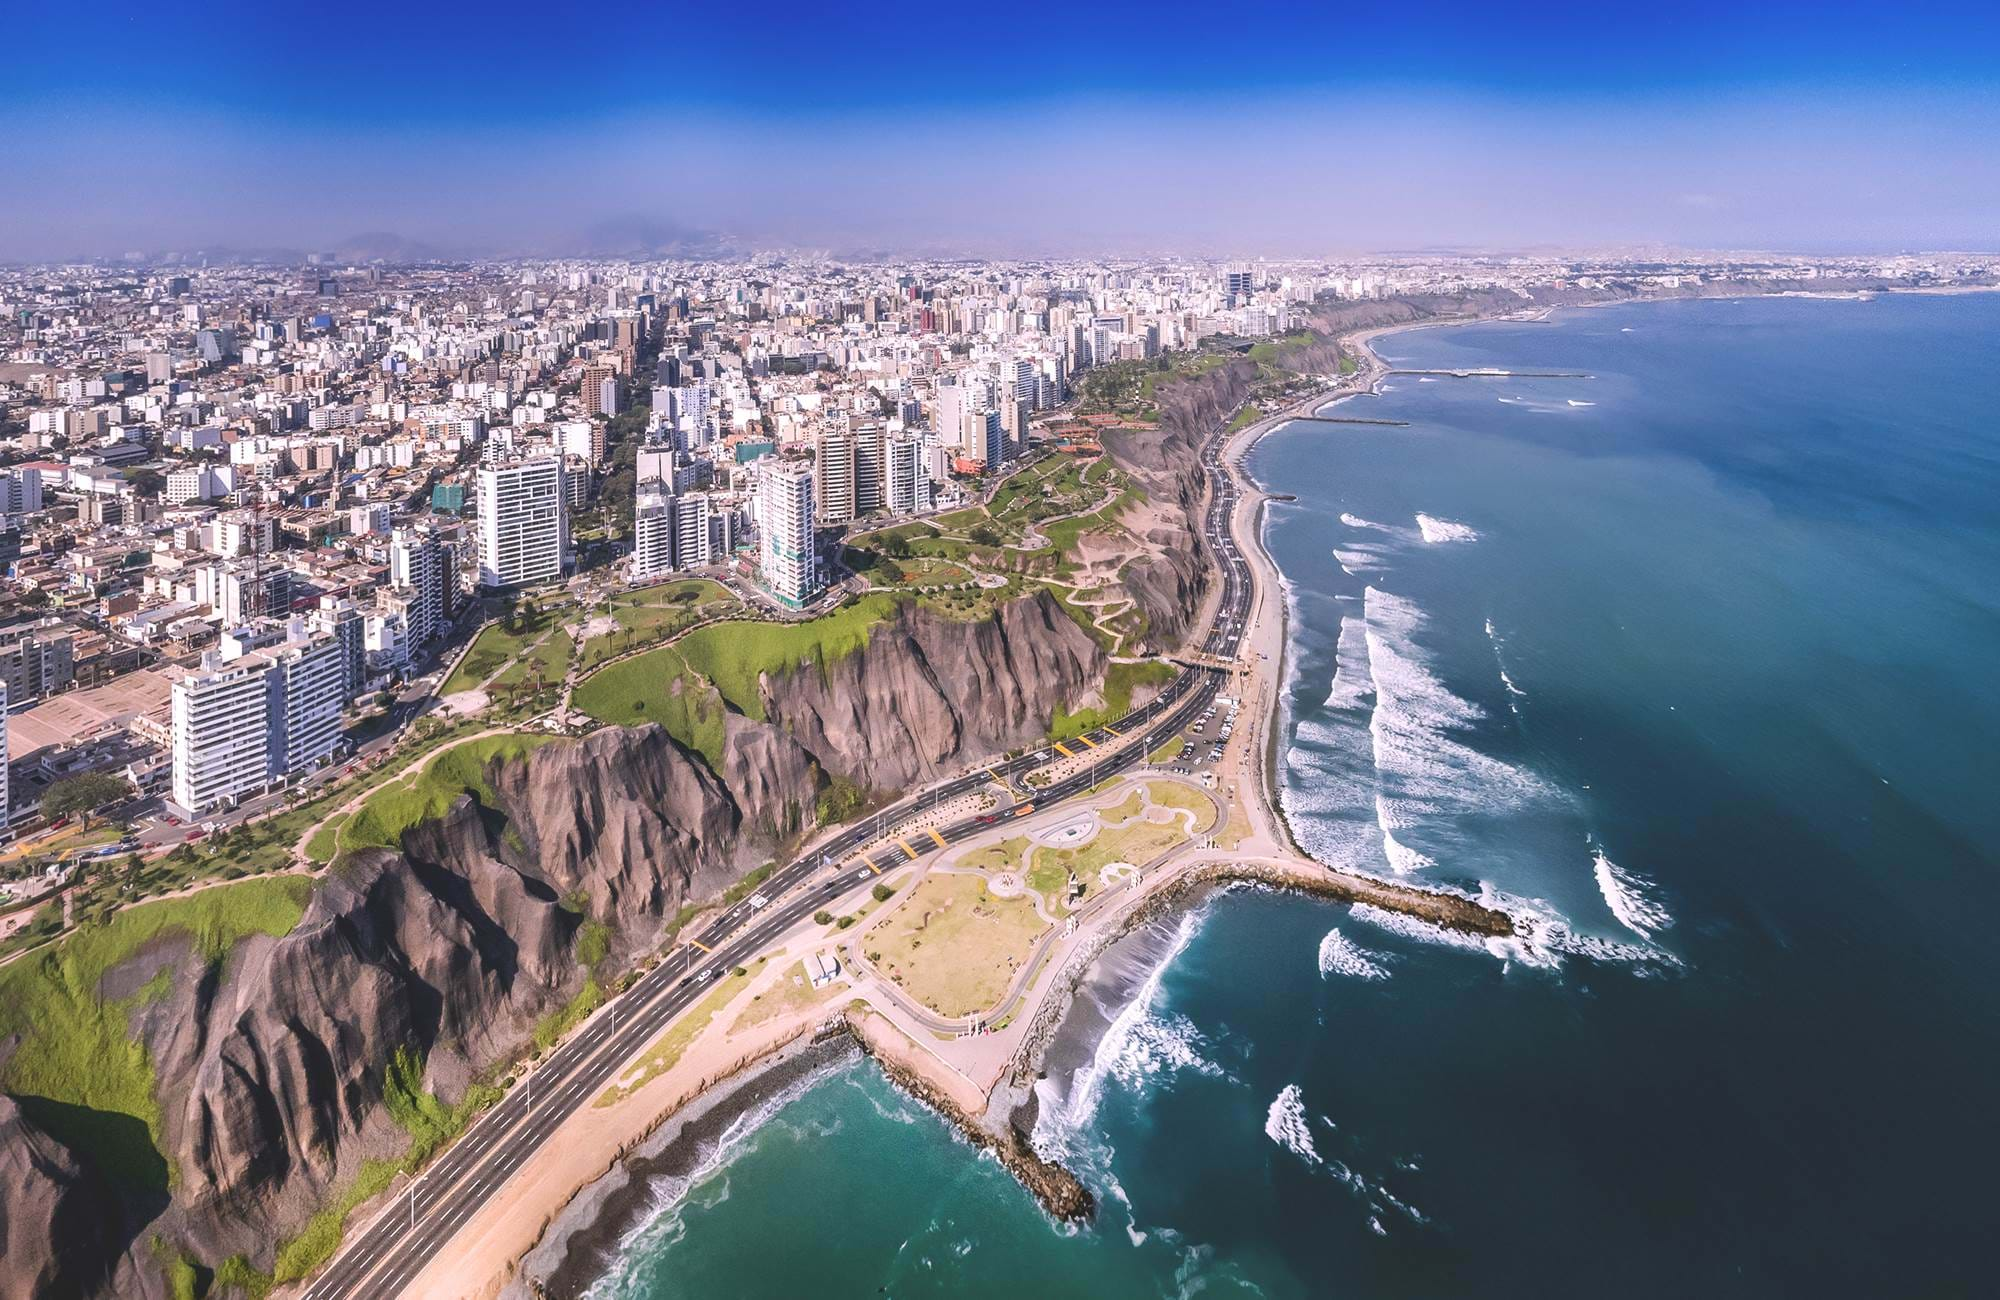 lima-peru-city-view-from-above-cover